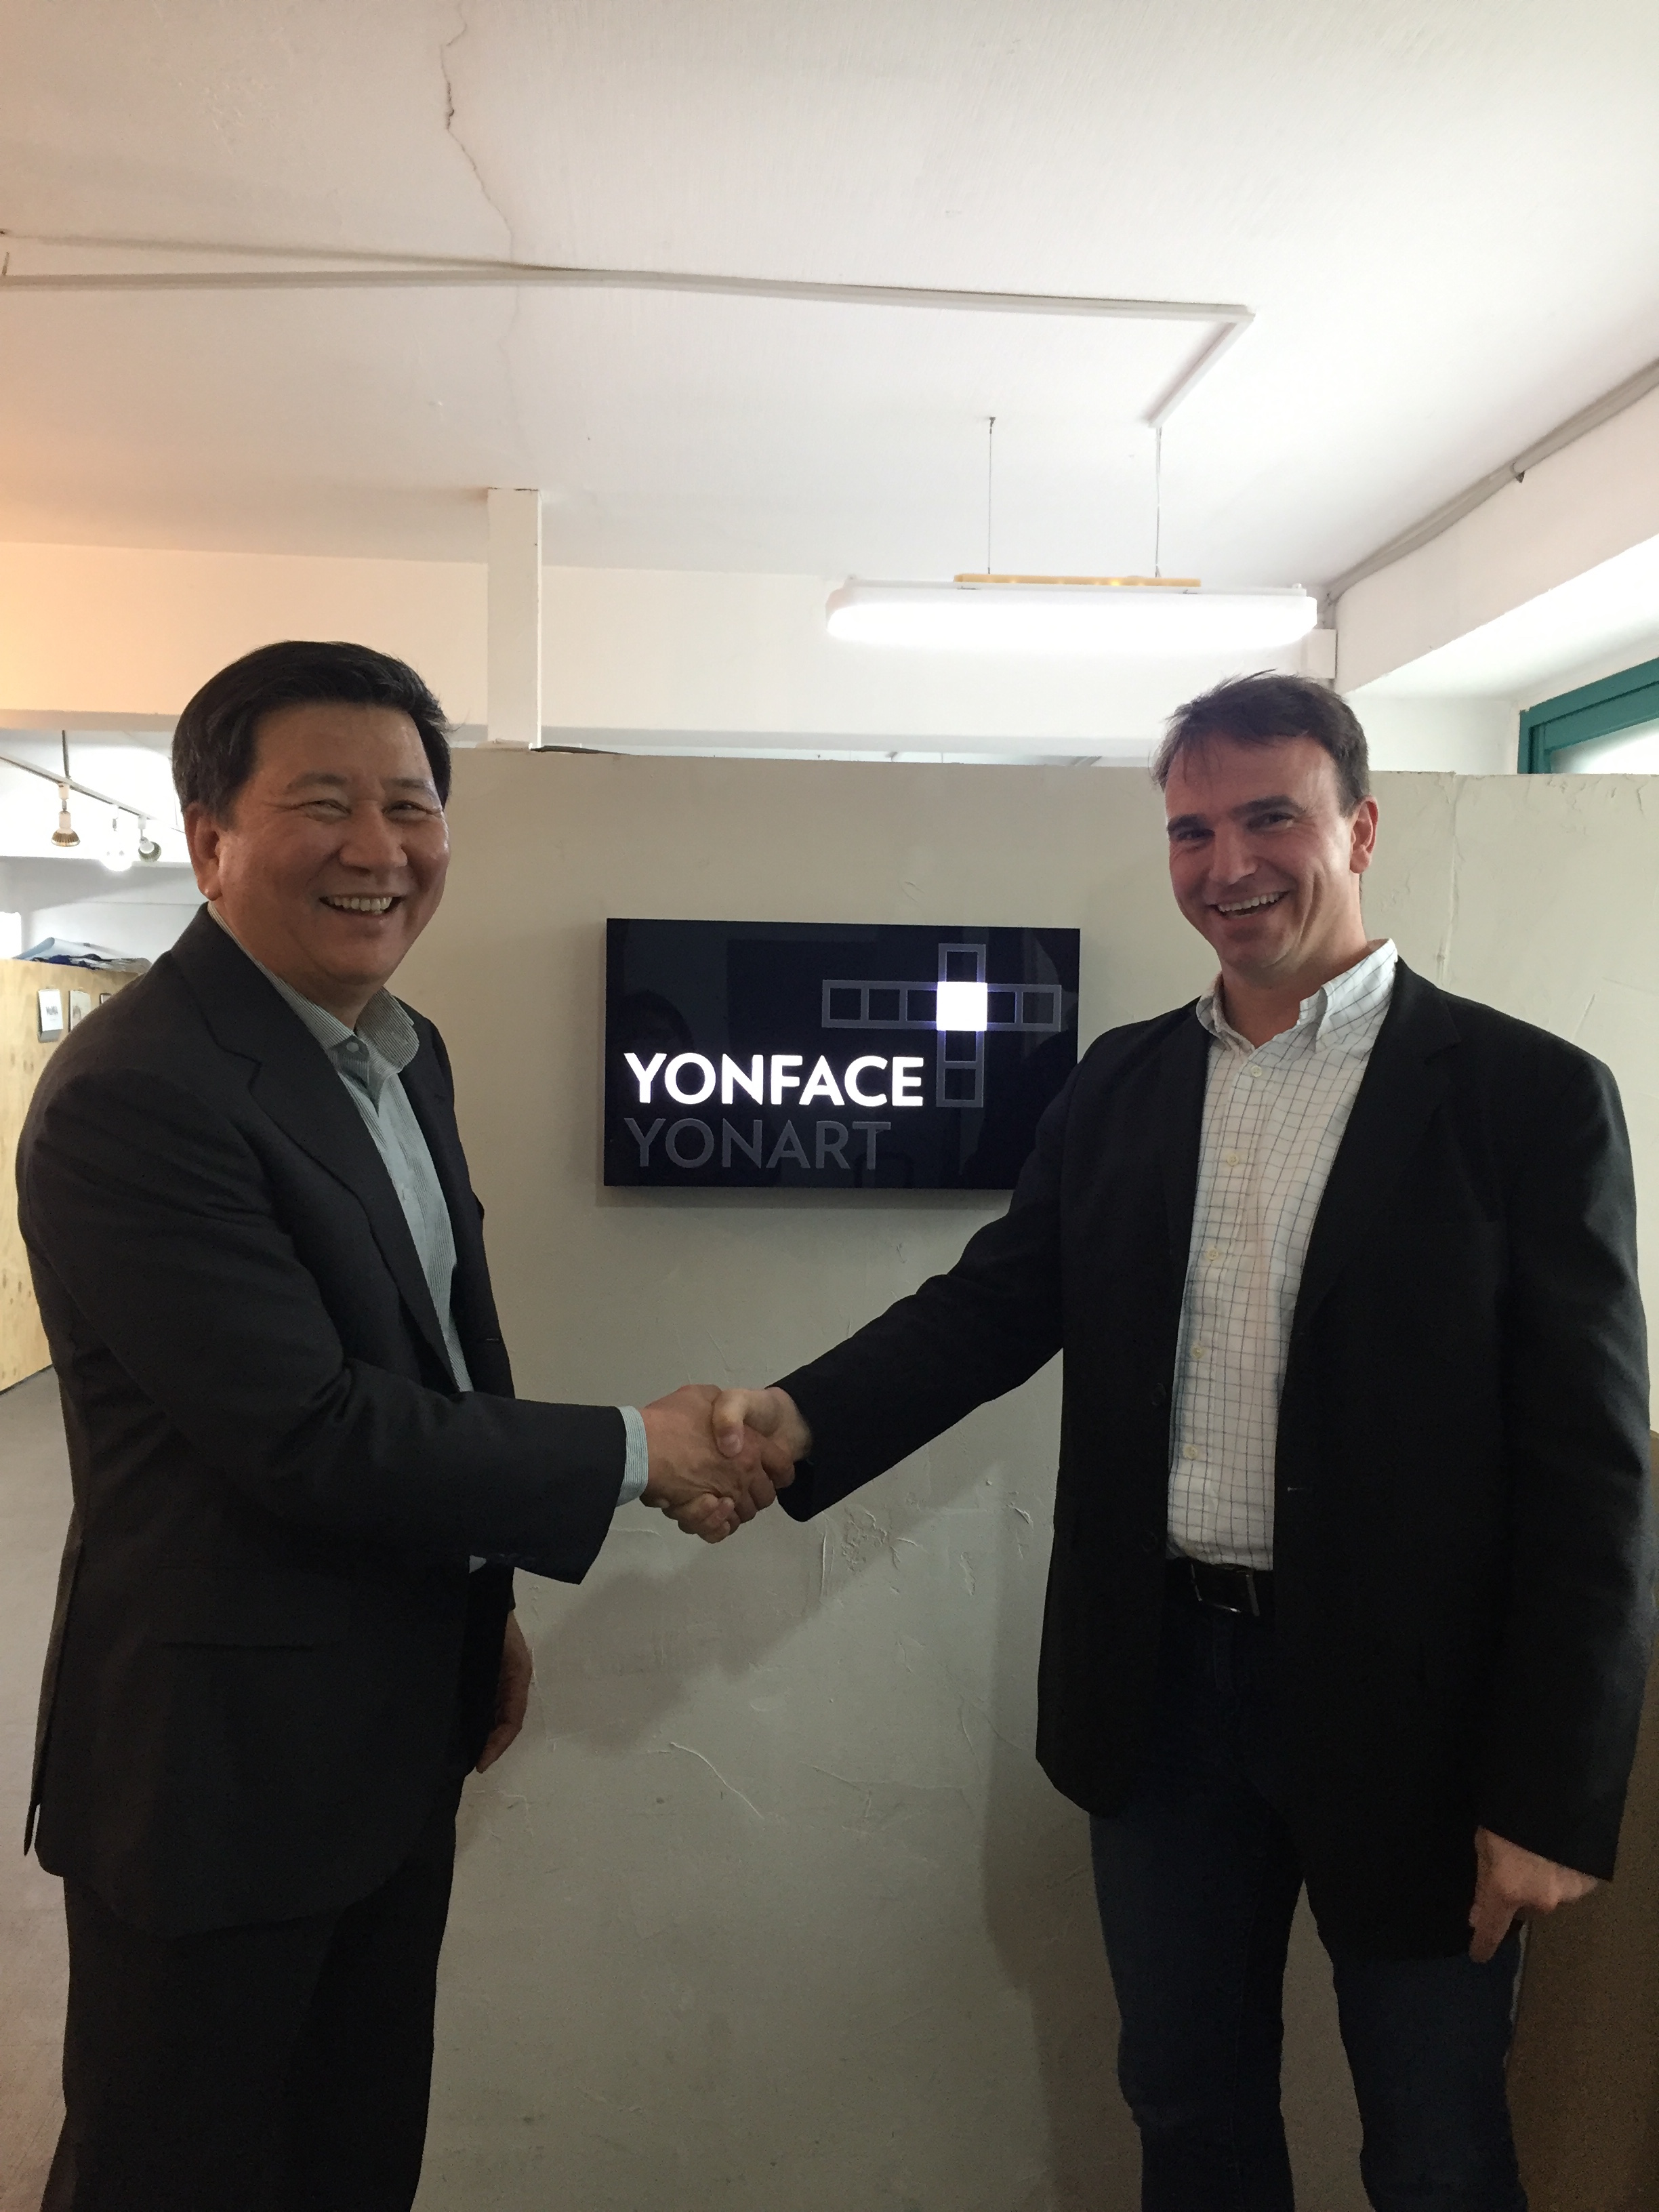 KS Kim, Steffen Haaga shaking hands at YonFace